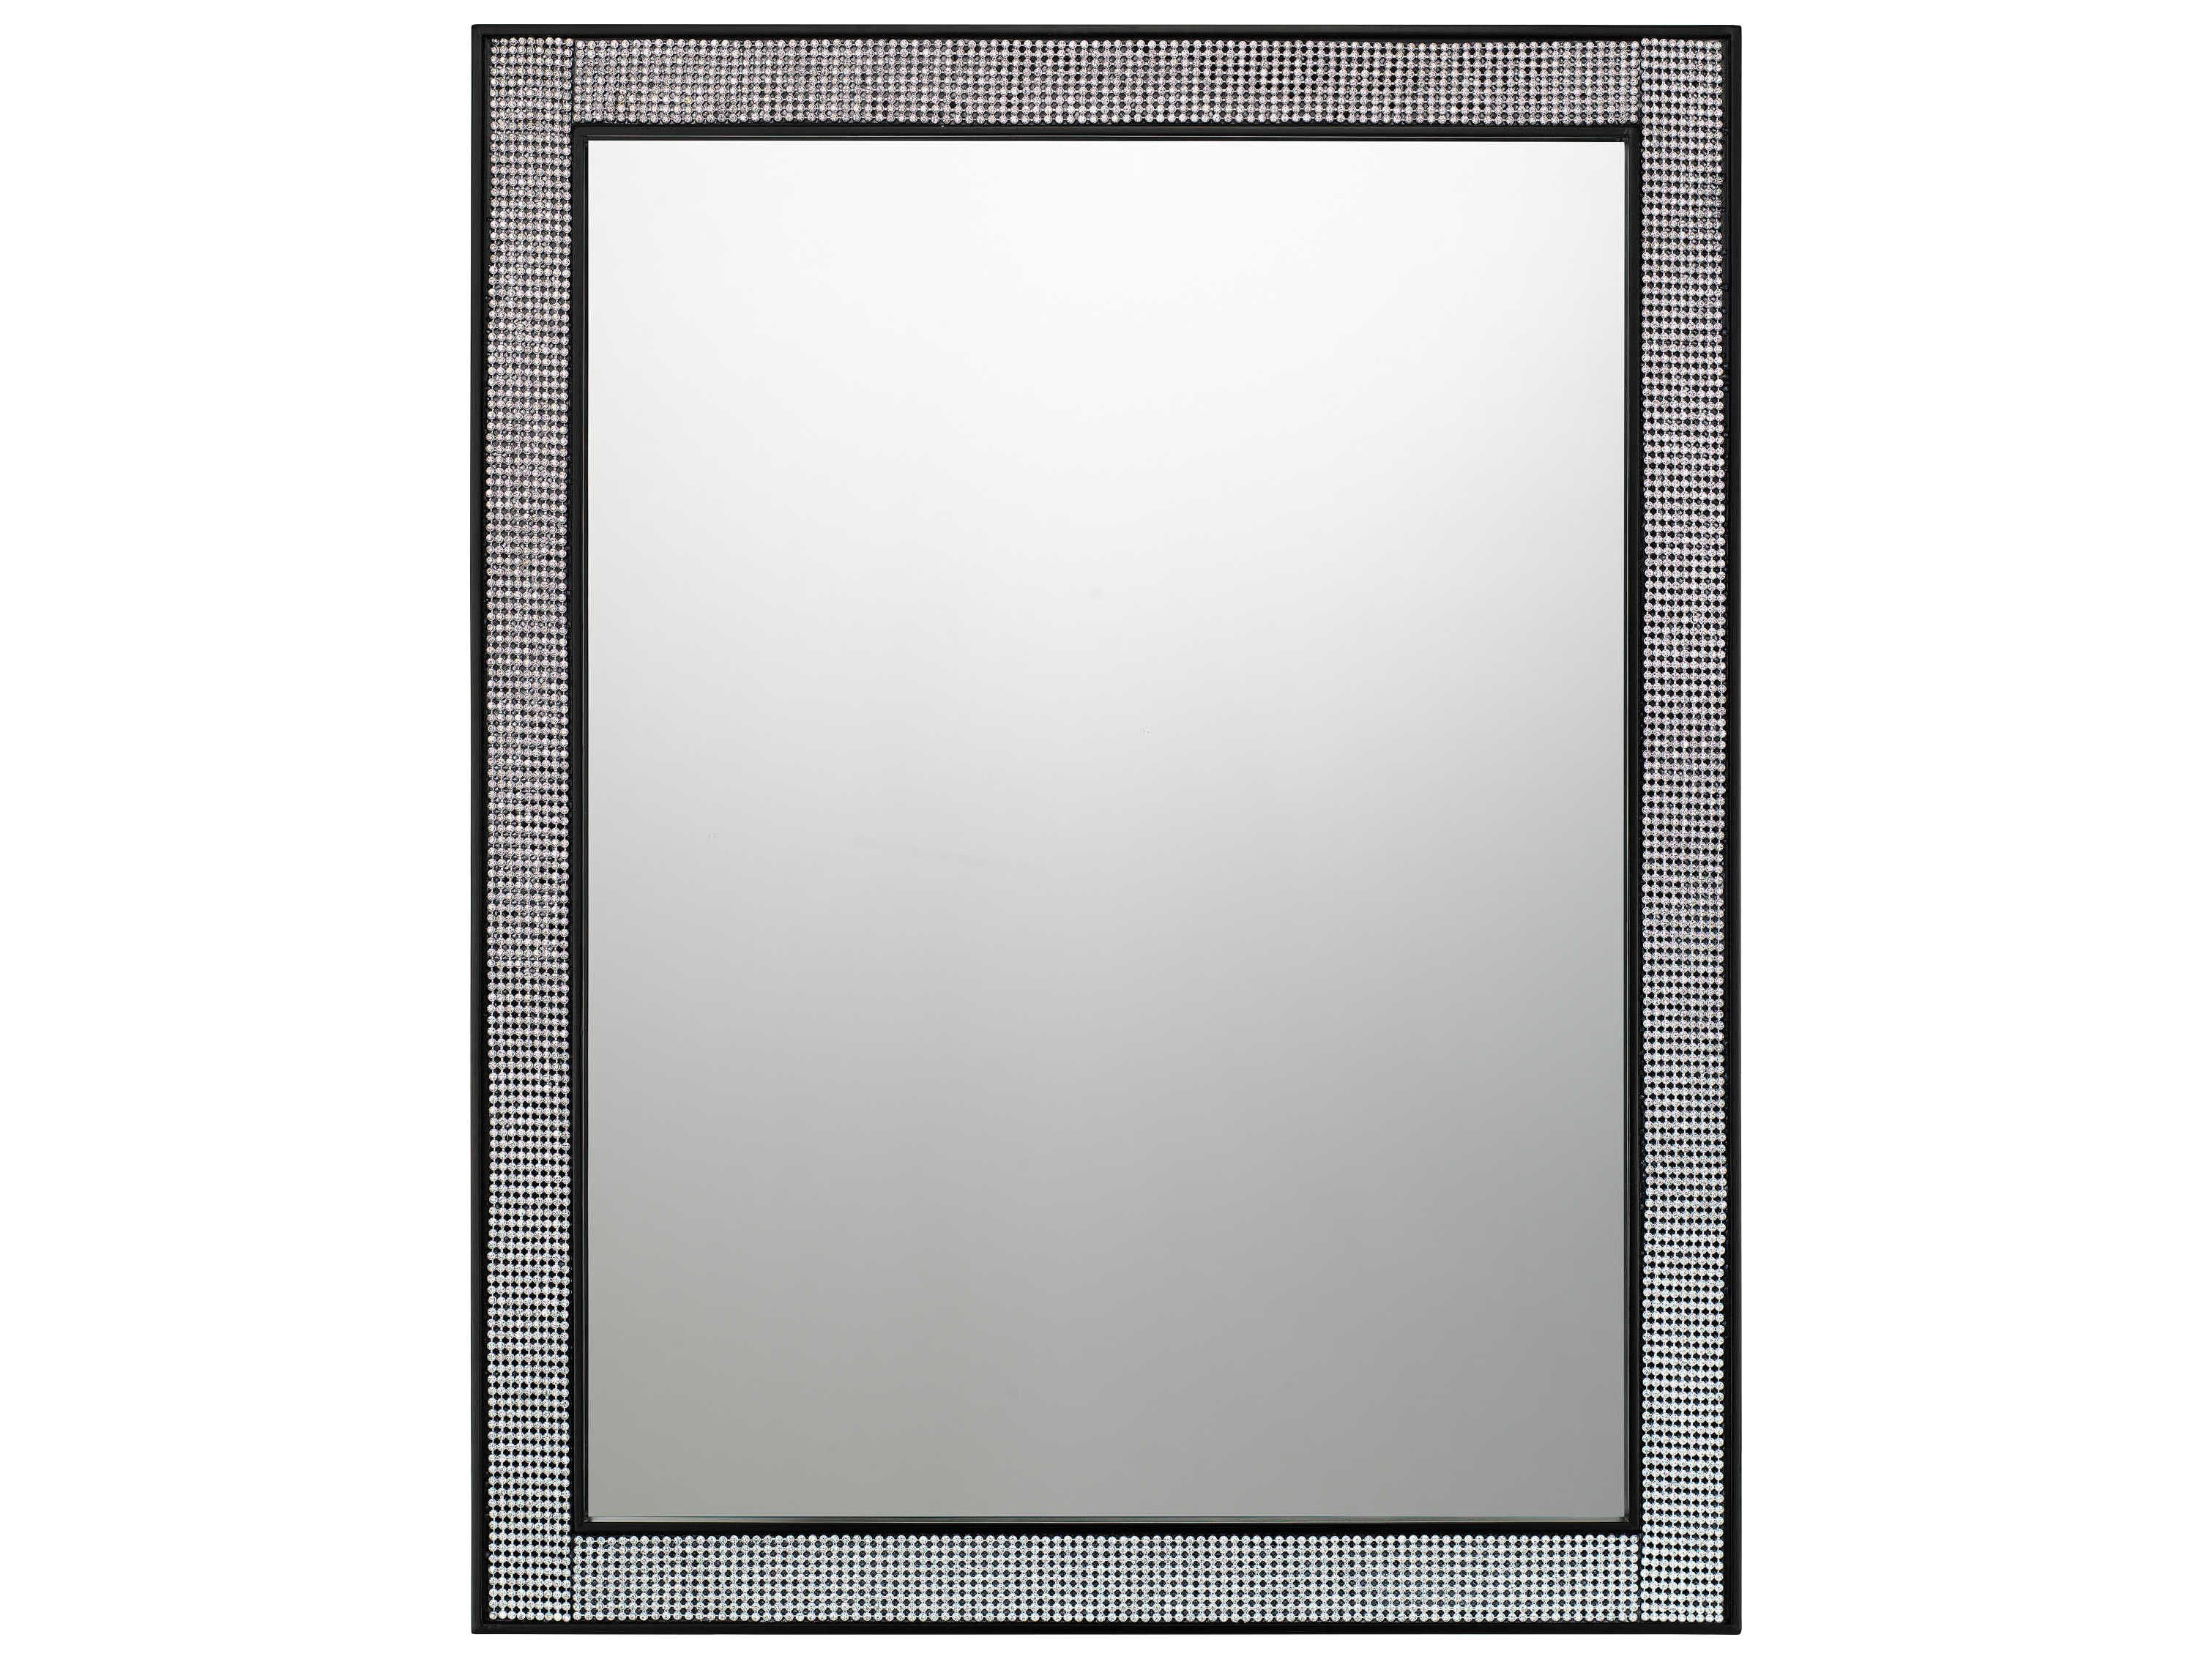 Most Recent Quiozel Evoke Mystic Black 22''w X 28''h Rectangular Wall Mirror Pertaining To Oblong Wall Mirrors (View 16 of 20)